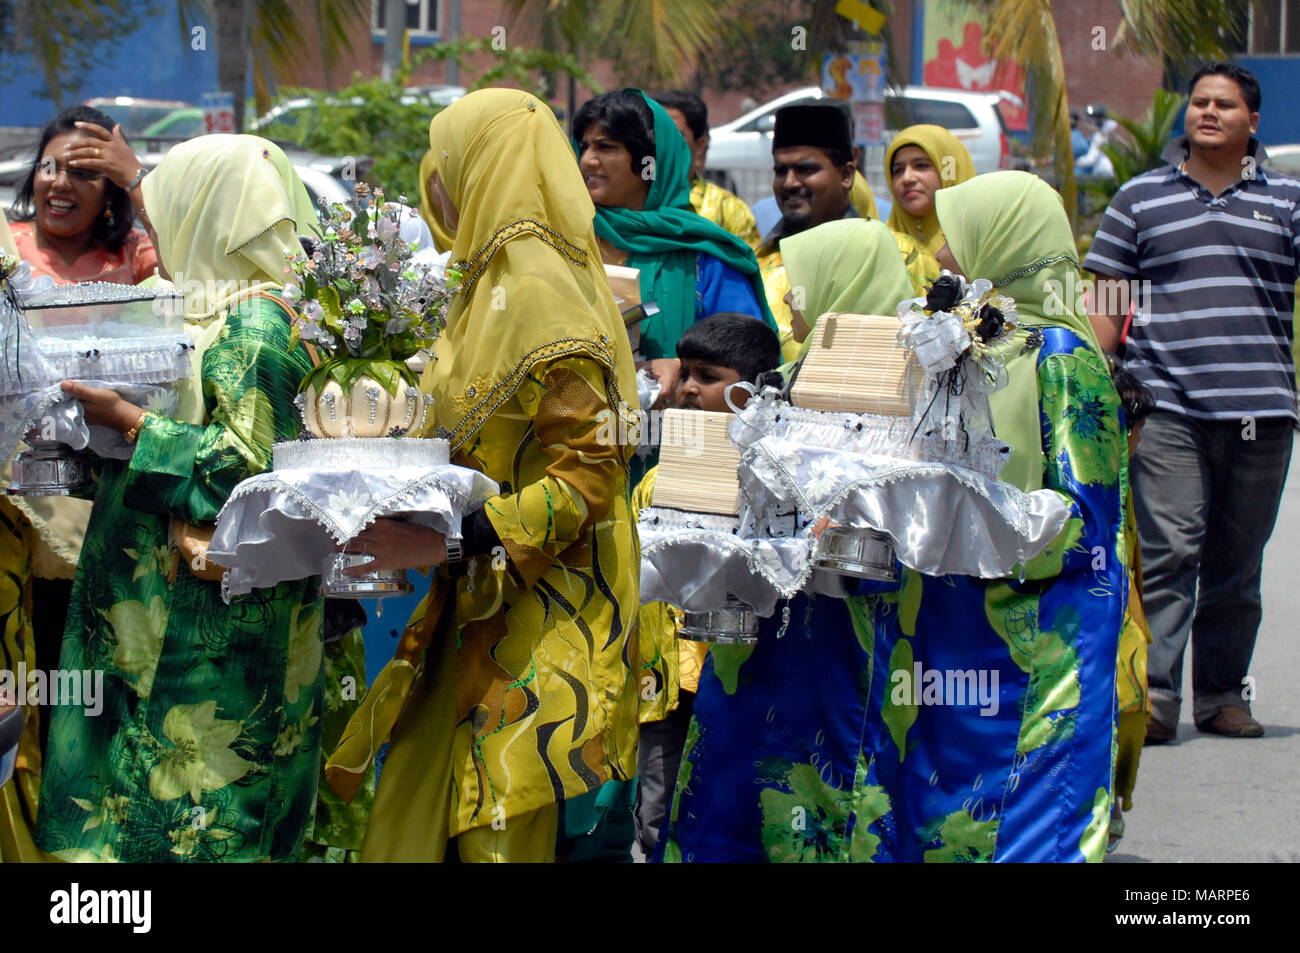 Malay Wedding Gifts: Malay Lady Stock Photos & Malay Lady Stock Images